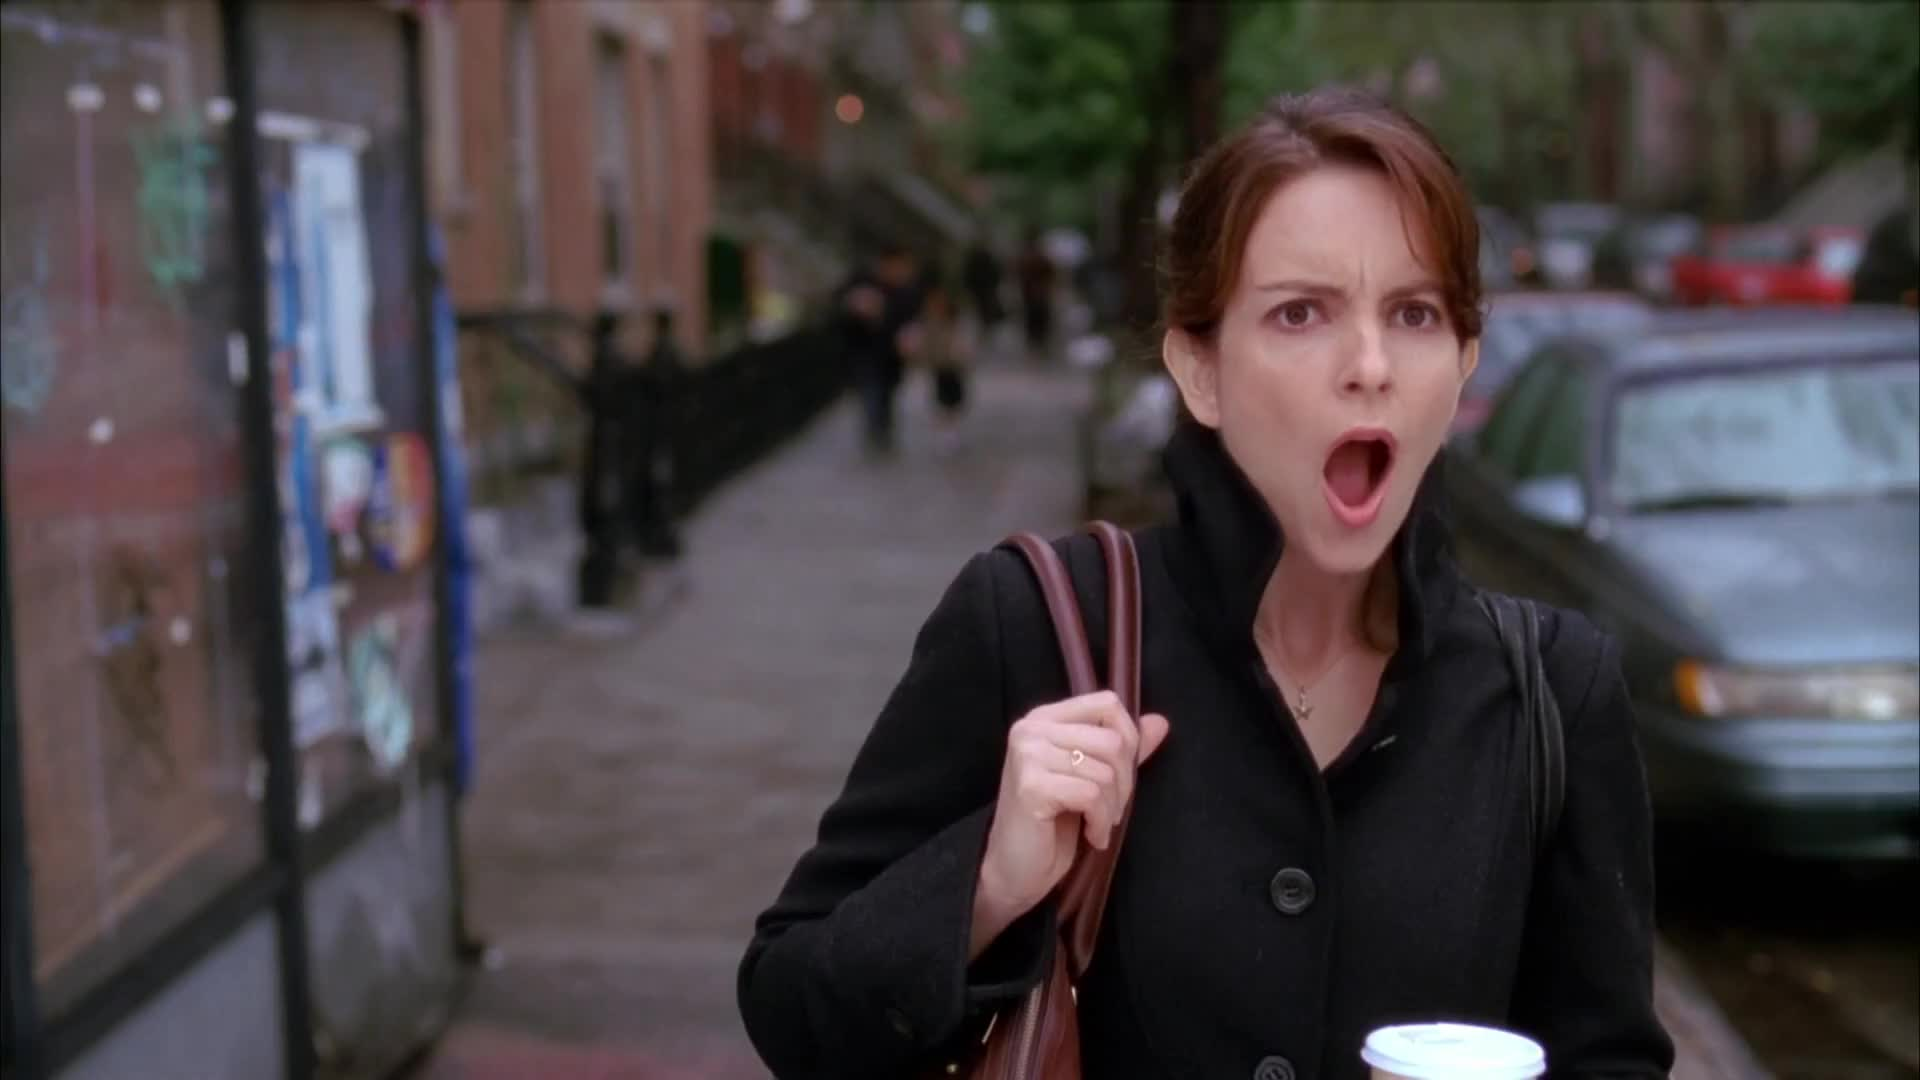 30 rock, celebs, fey, lemon, liz, s02e06, somebody to love, the, tina, tina fey, what, what the fuck, wtf, What the what! GIFs